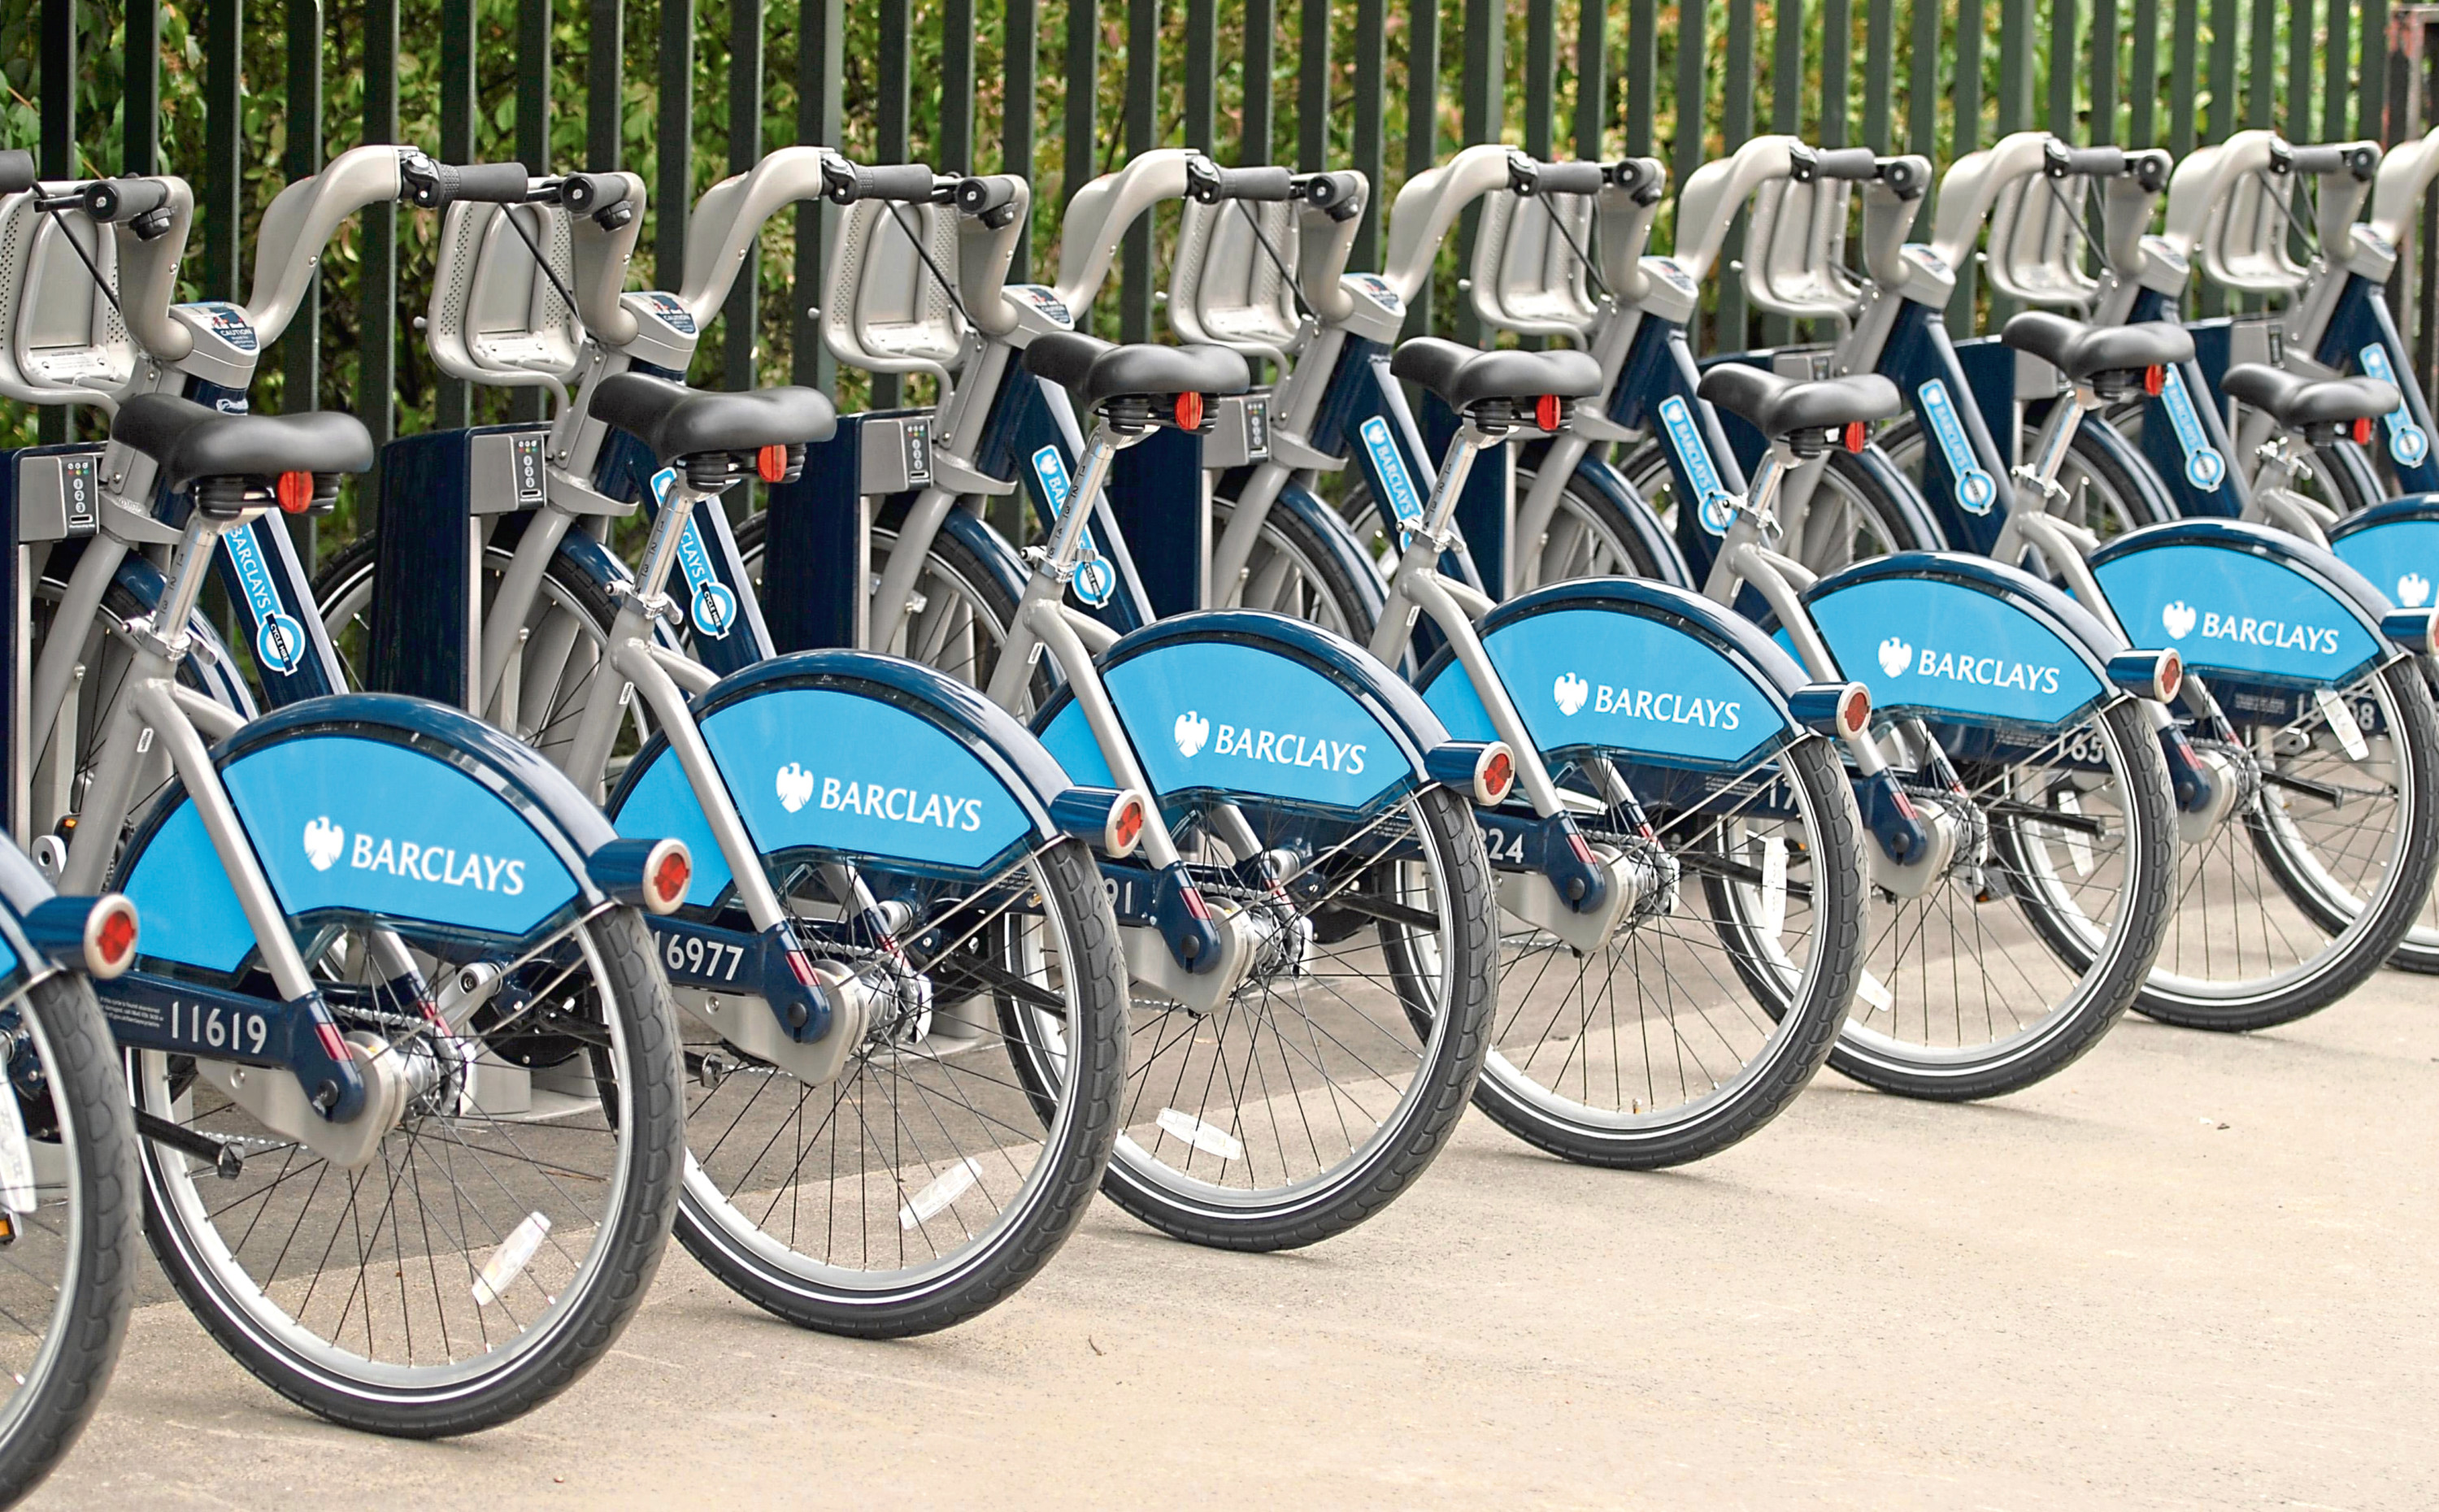 Bicycle hire schemes are proving popular in cities across Britain